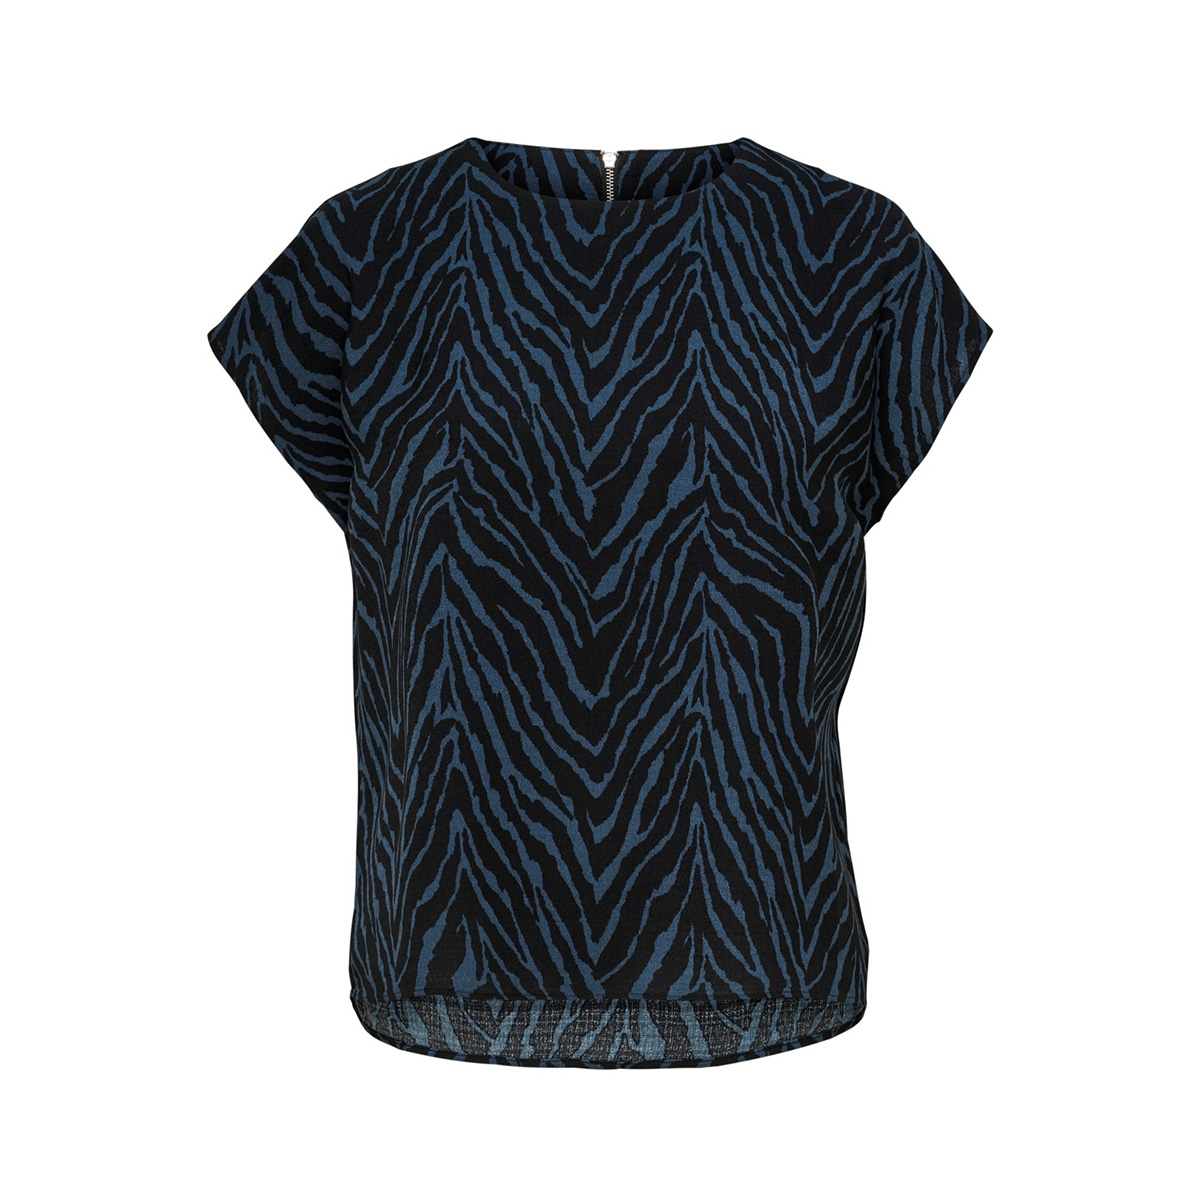 jdylucy s/s zip top denim wvn 15185148 jacqueline de yong t-shirt black/dark denim